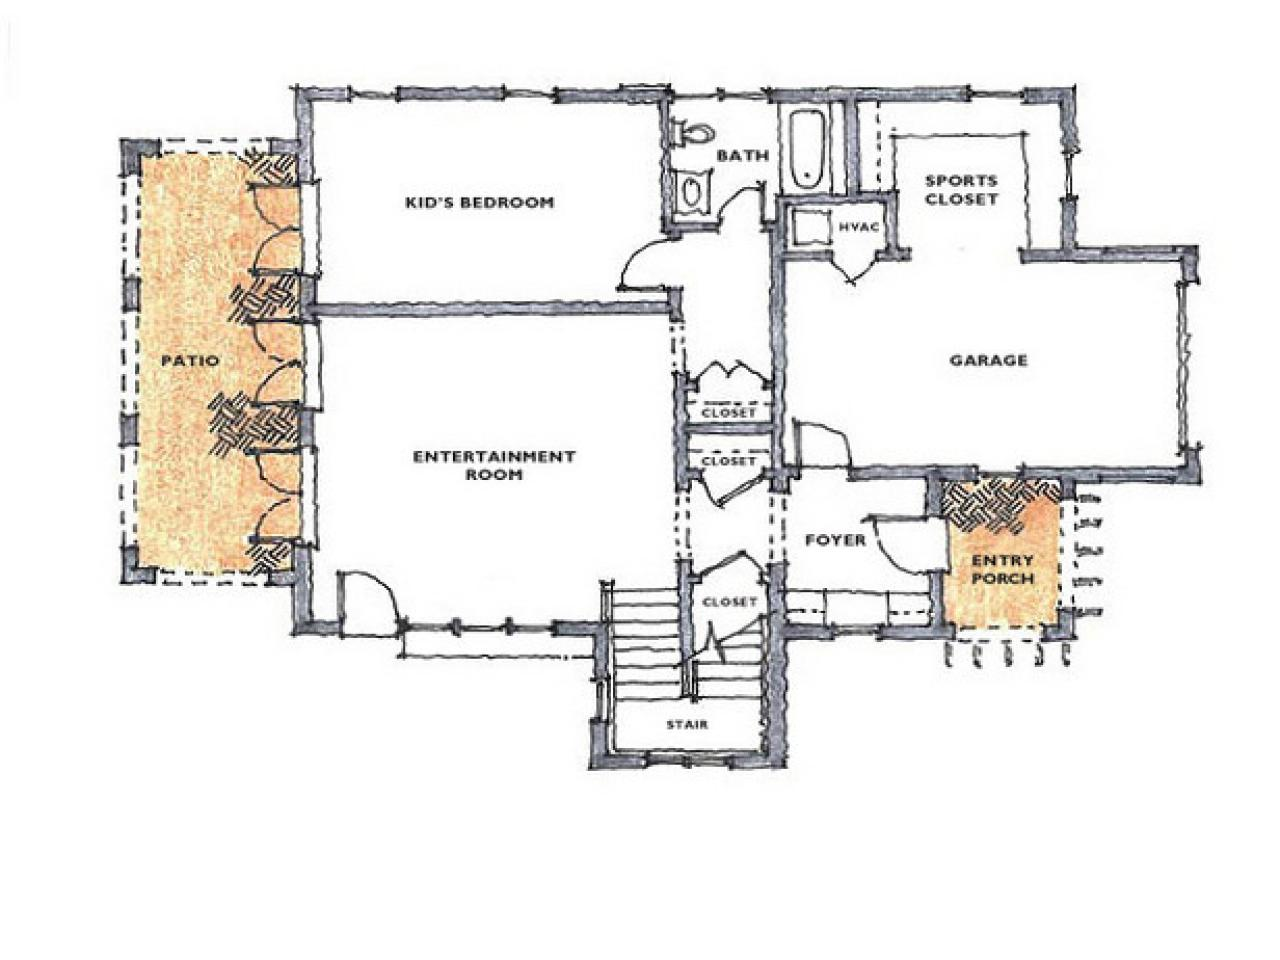 Floor plan for hgtv dream home 2008 hgtv dream home 2008 Dream house floor plans